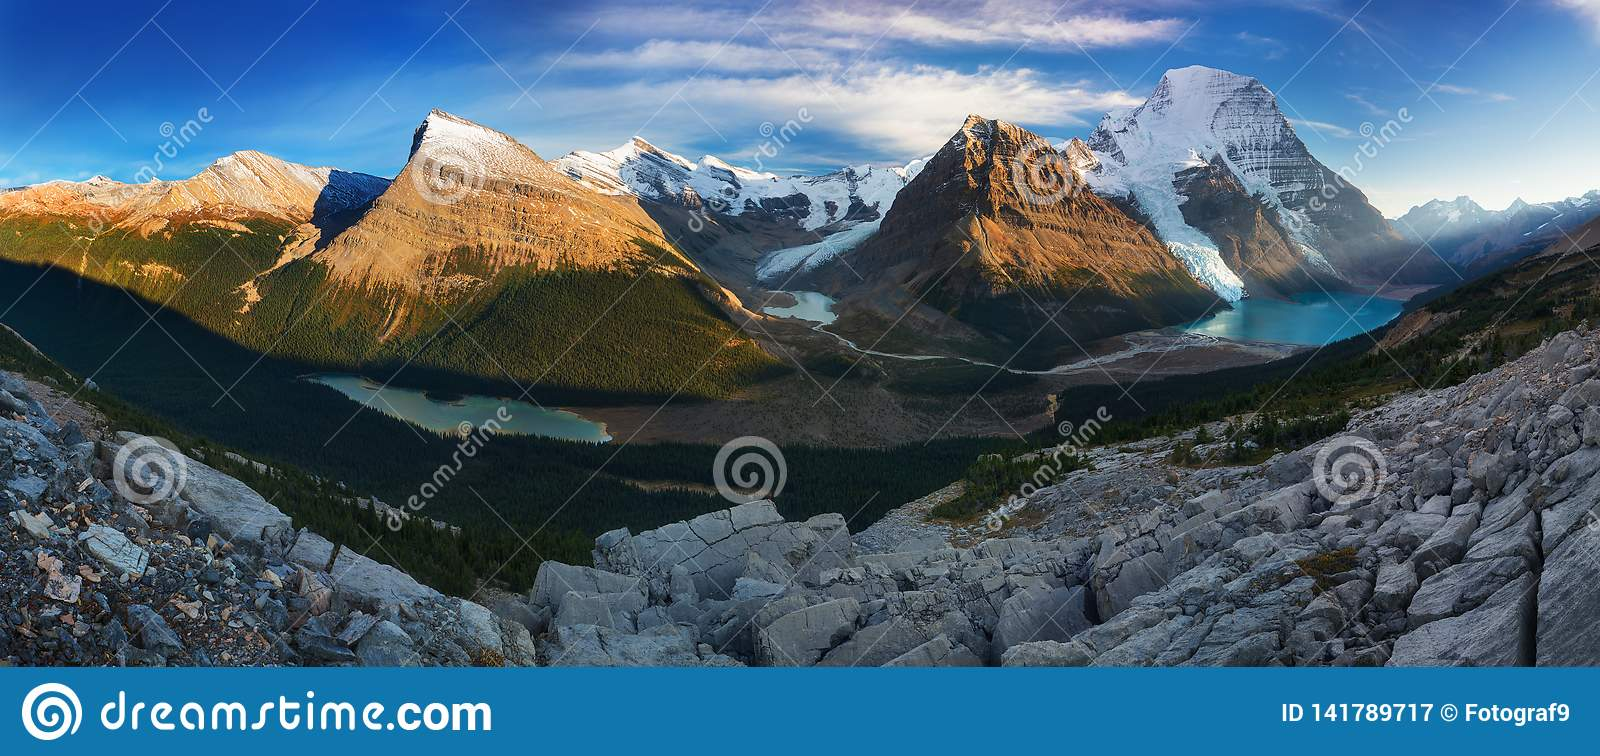 Distant Panoramic Landscape of Berg Lake and Snowy Mountain Robson Top in Jasper National Park Canadian Rocky Mountains.